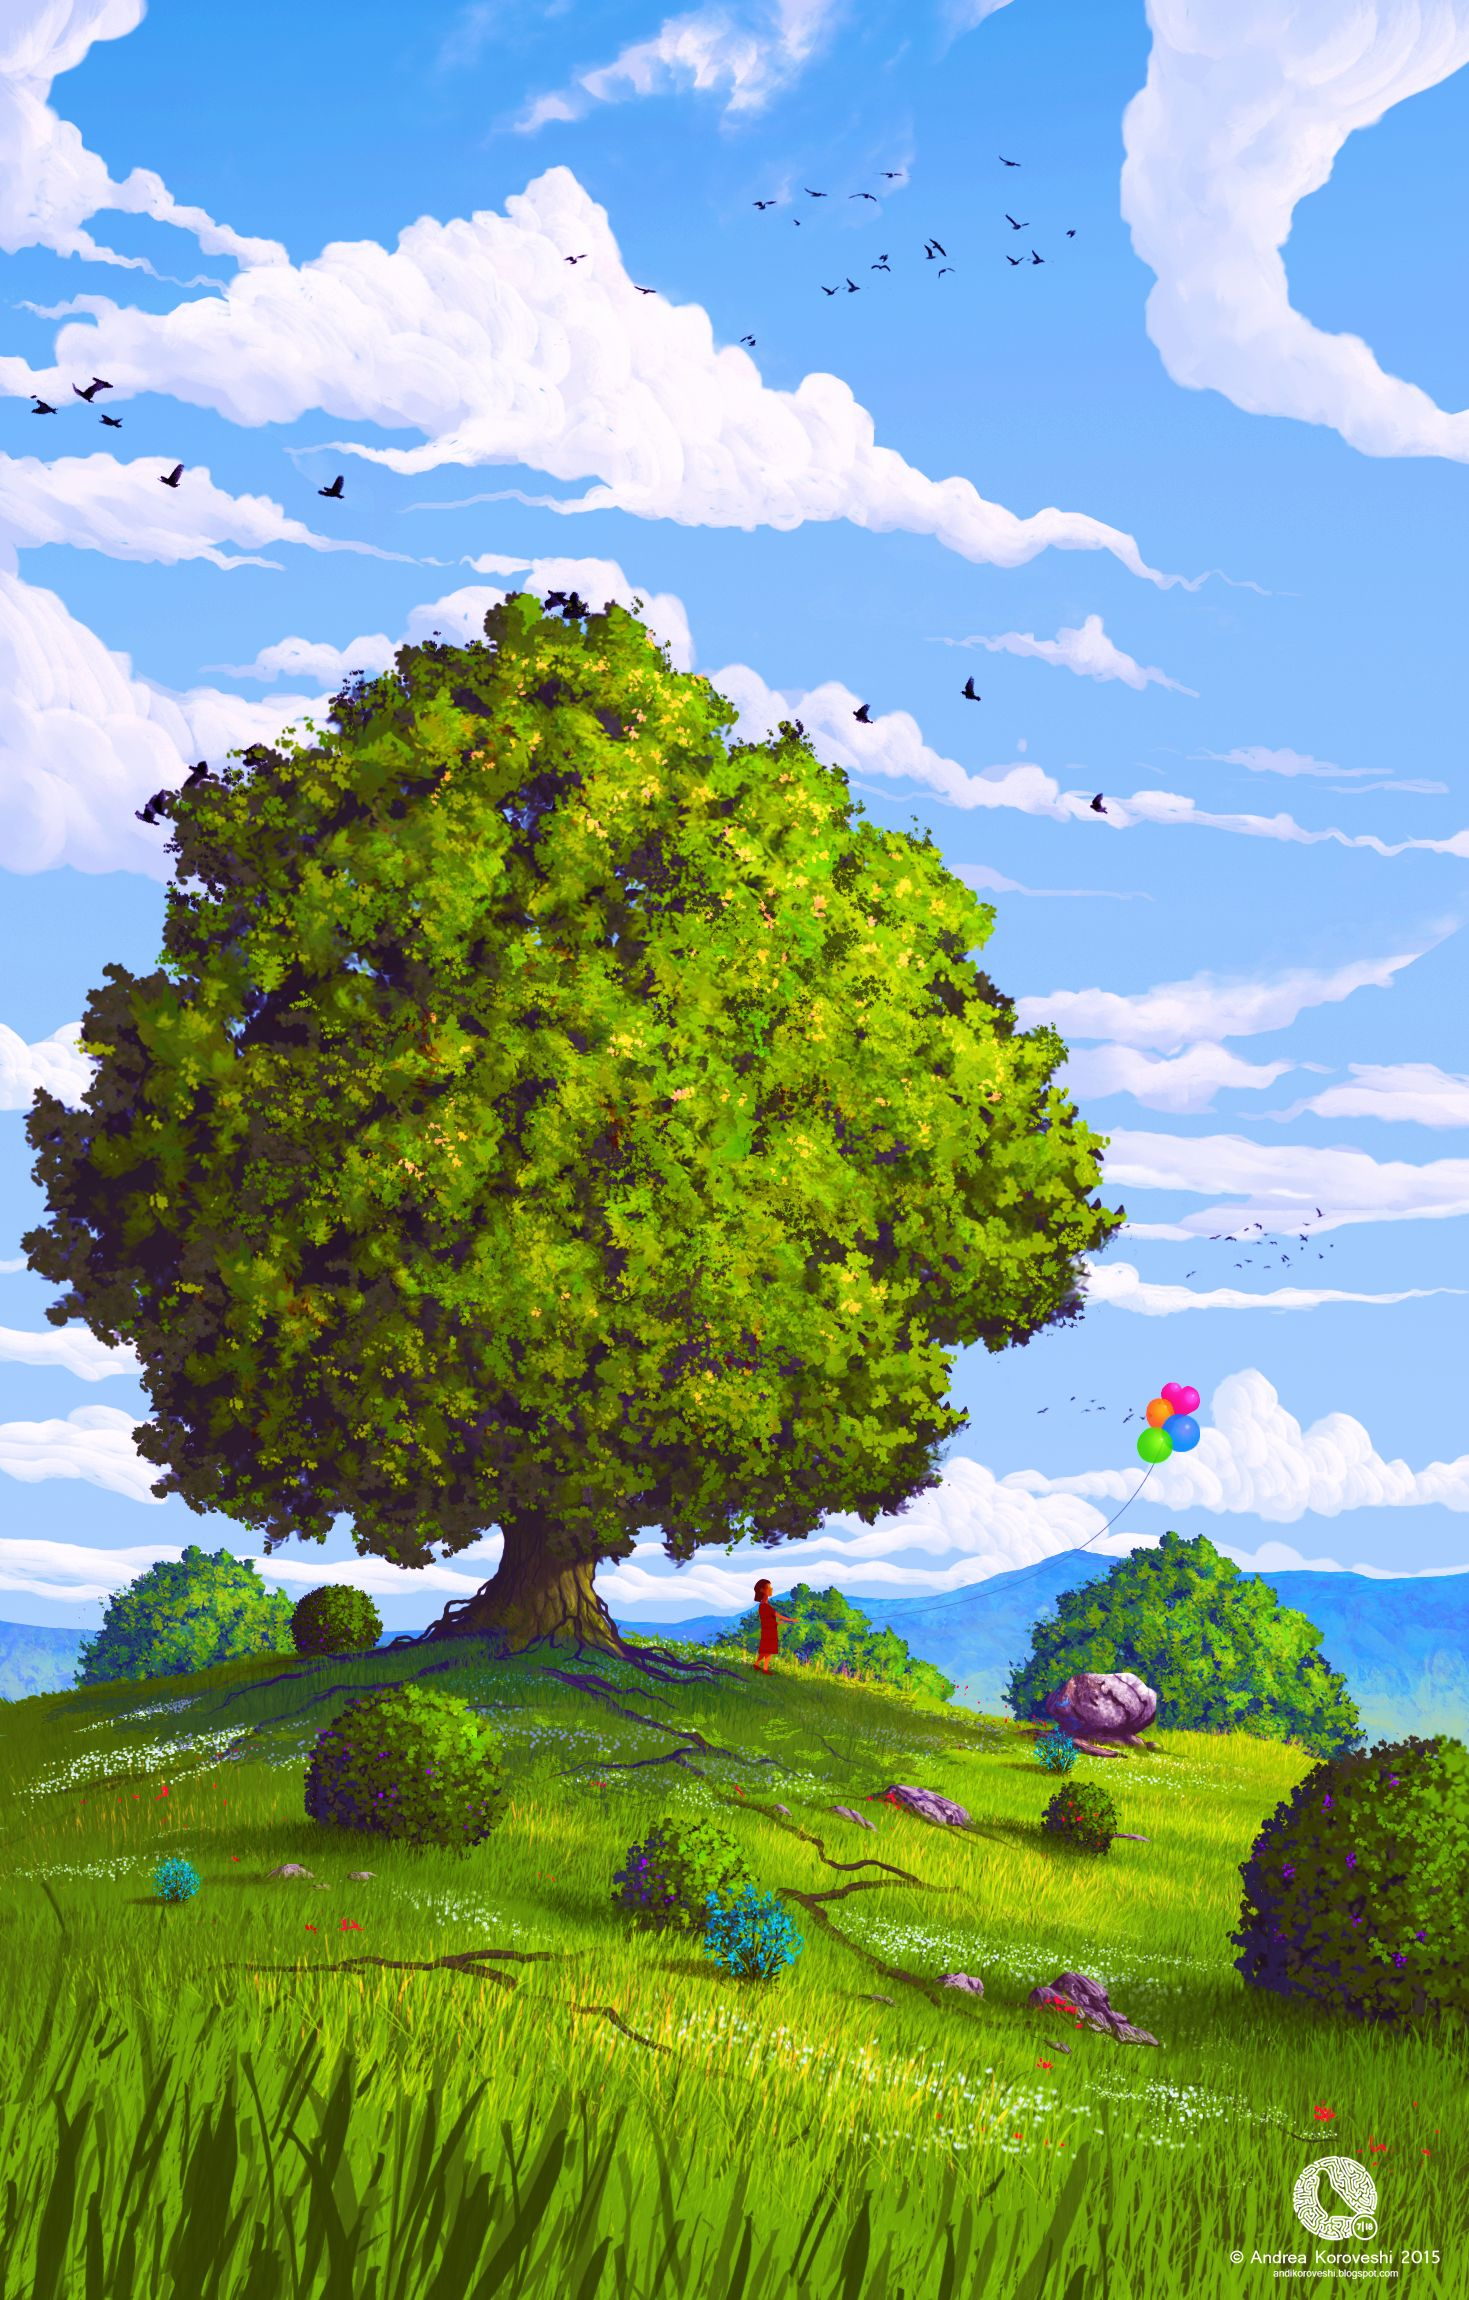 55999 download wallpaper Art, Summer, Balloons, Wood, Tree, Field, Child, Air Balloons screensavers and pictures for free